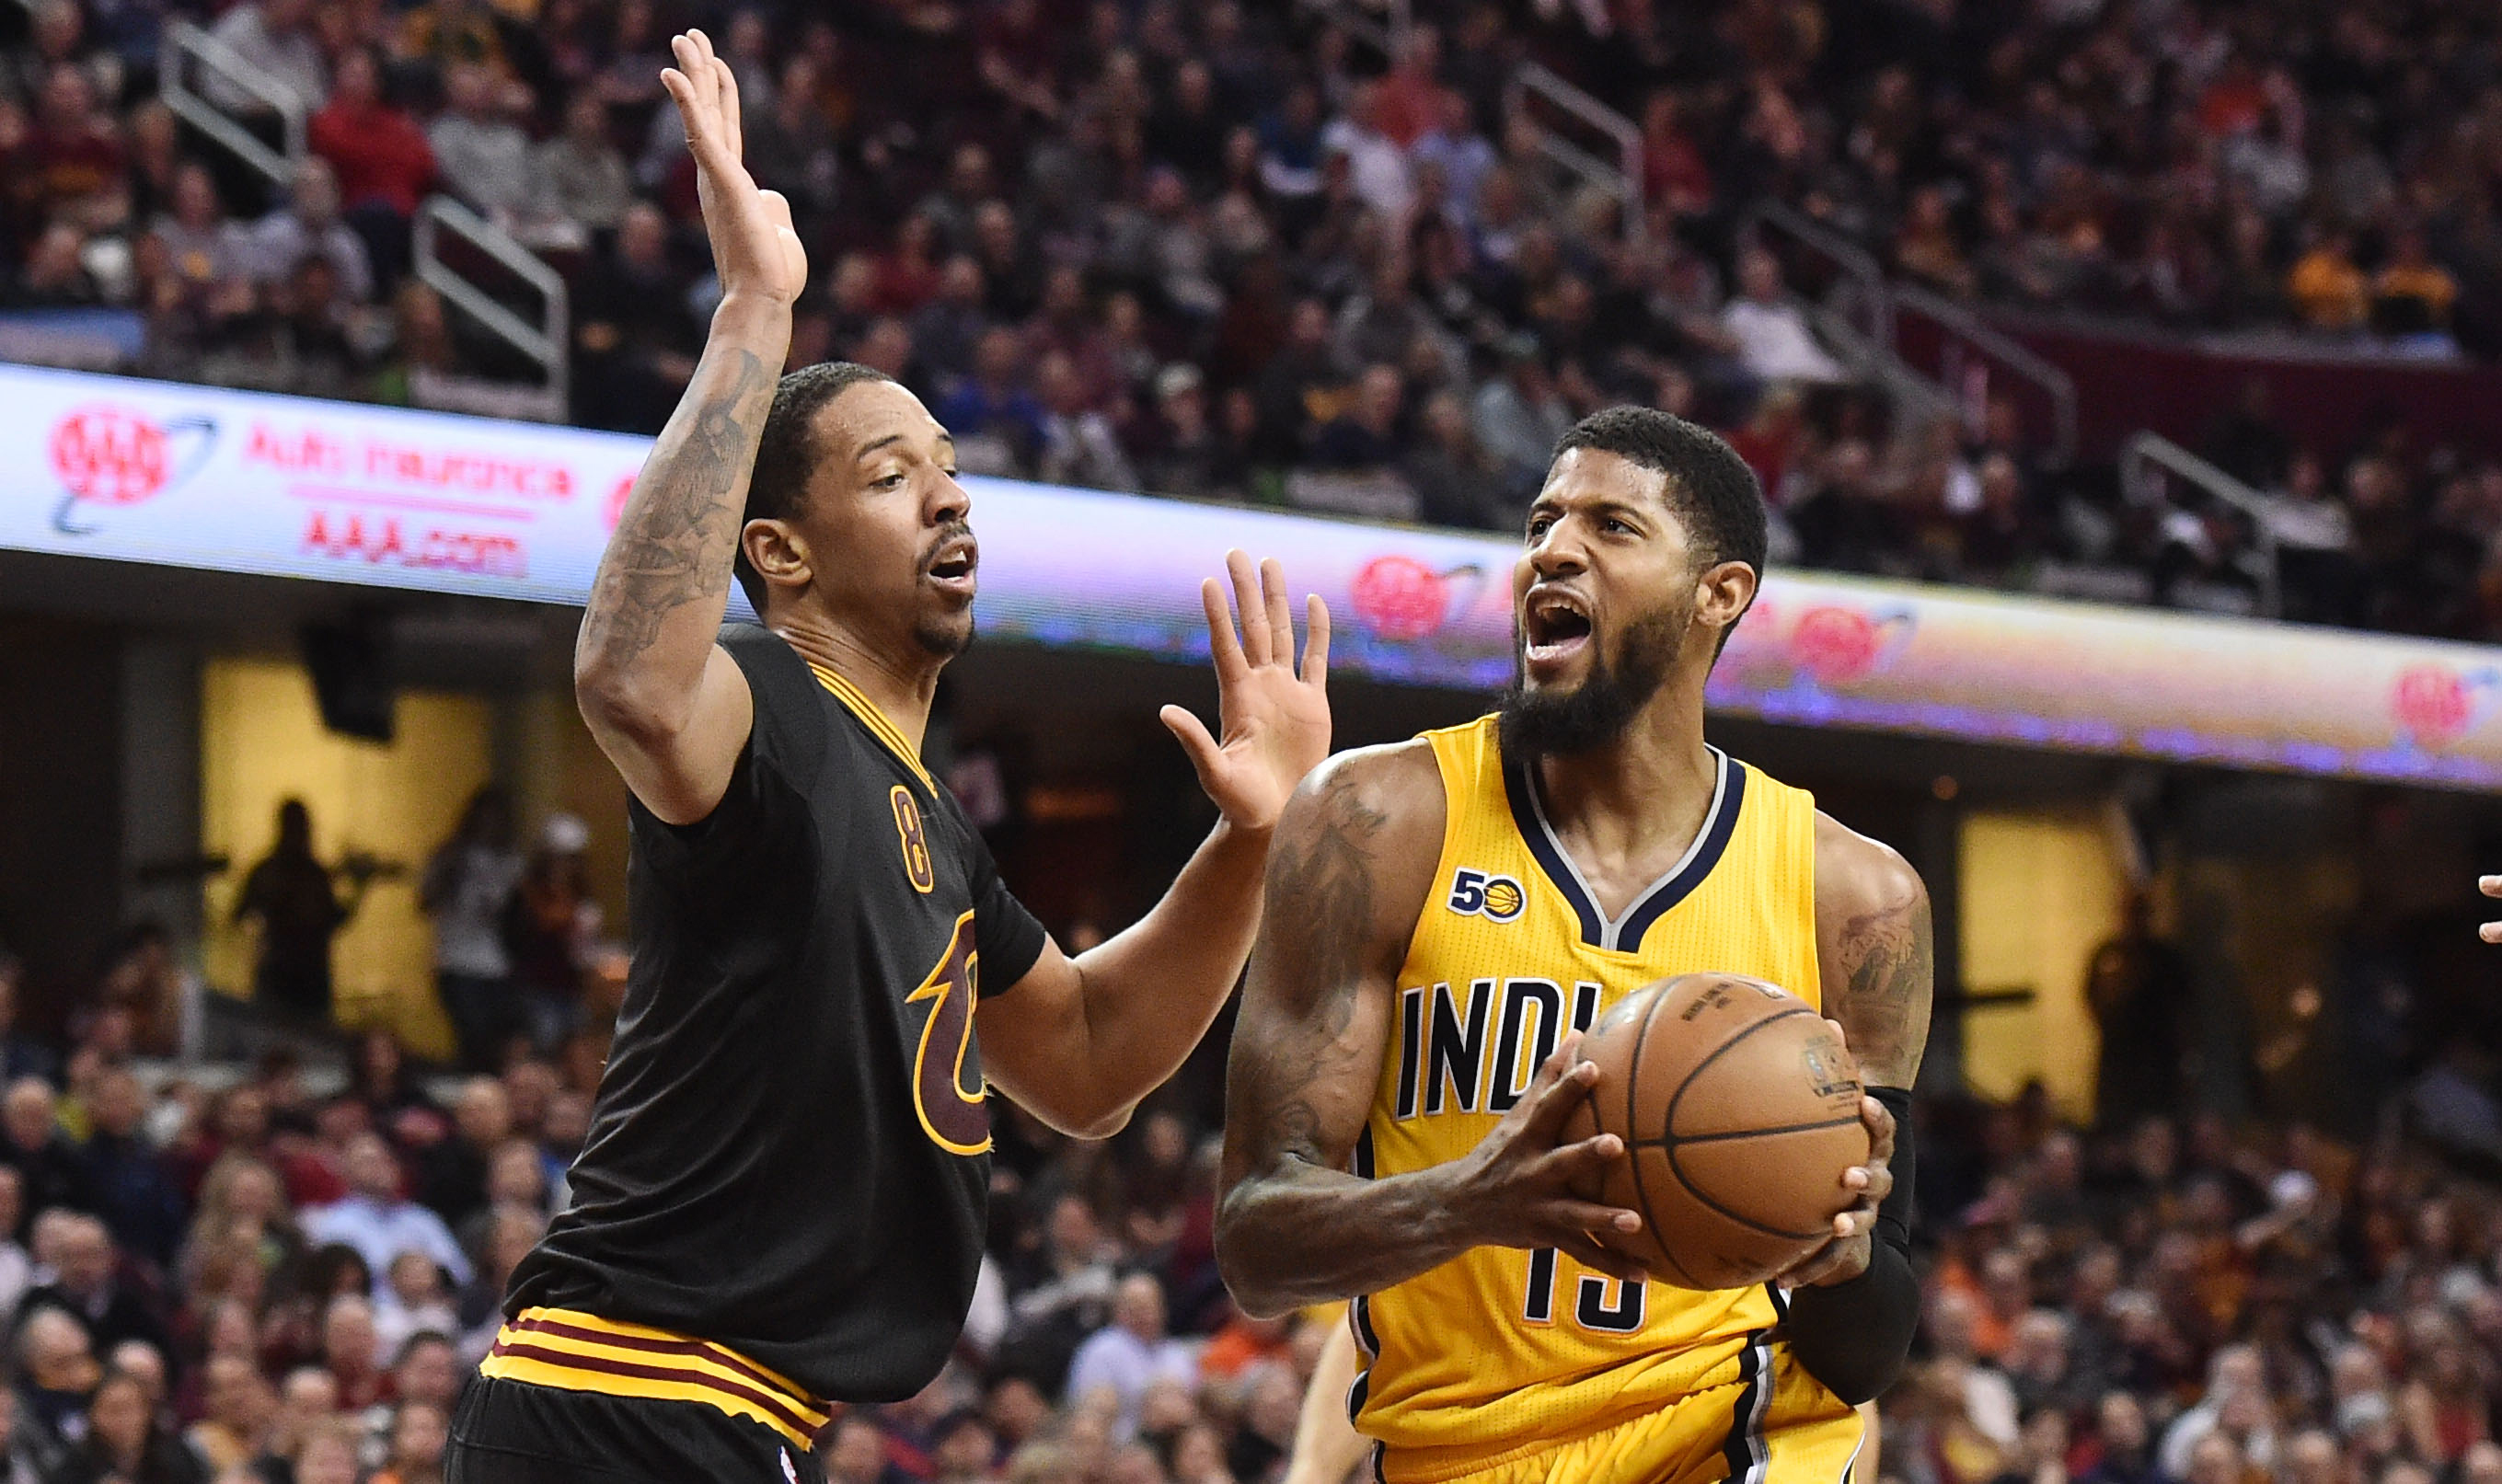 9879427-nba-indiana-pacers-at-cleveland-cavaliers-1